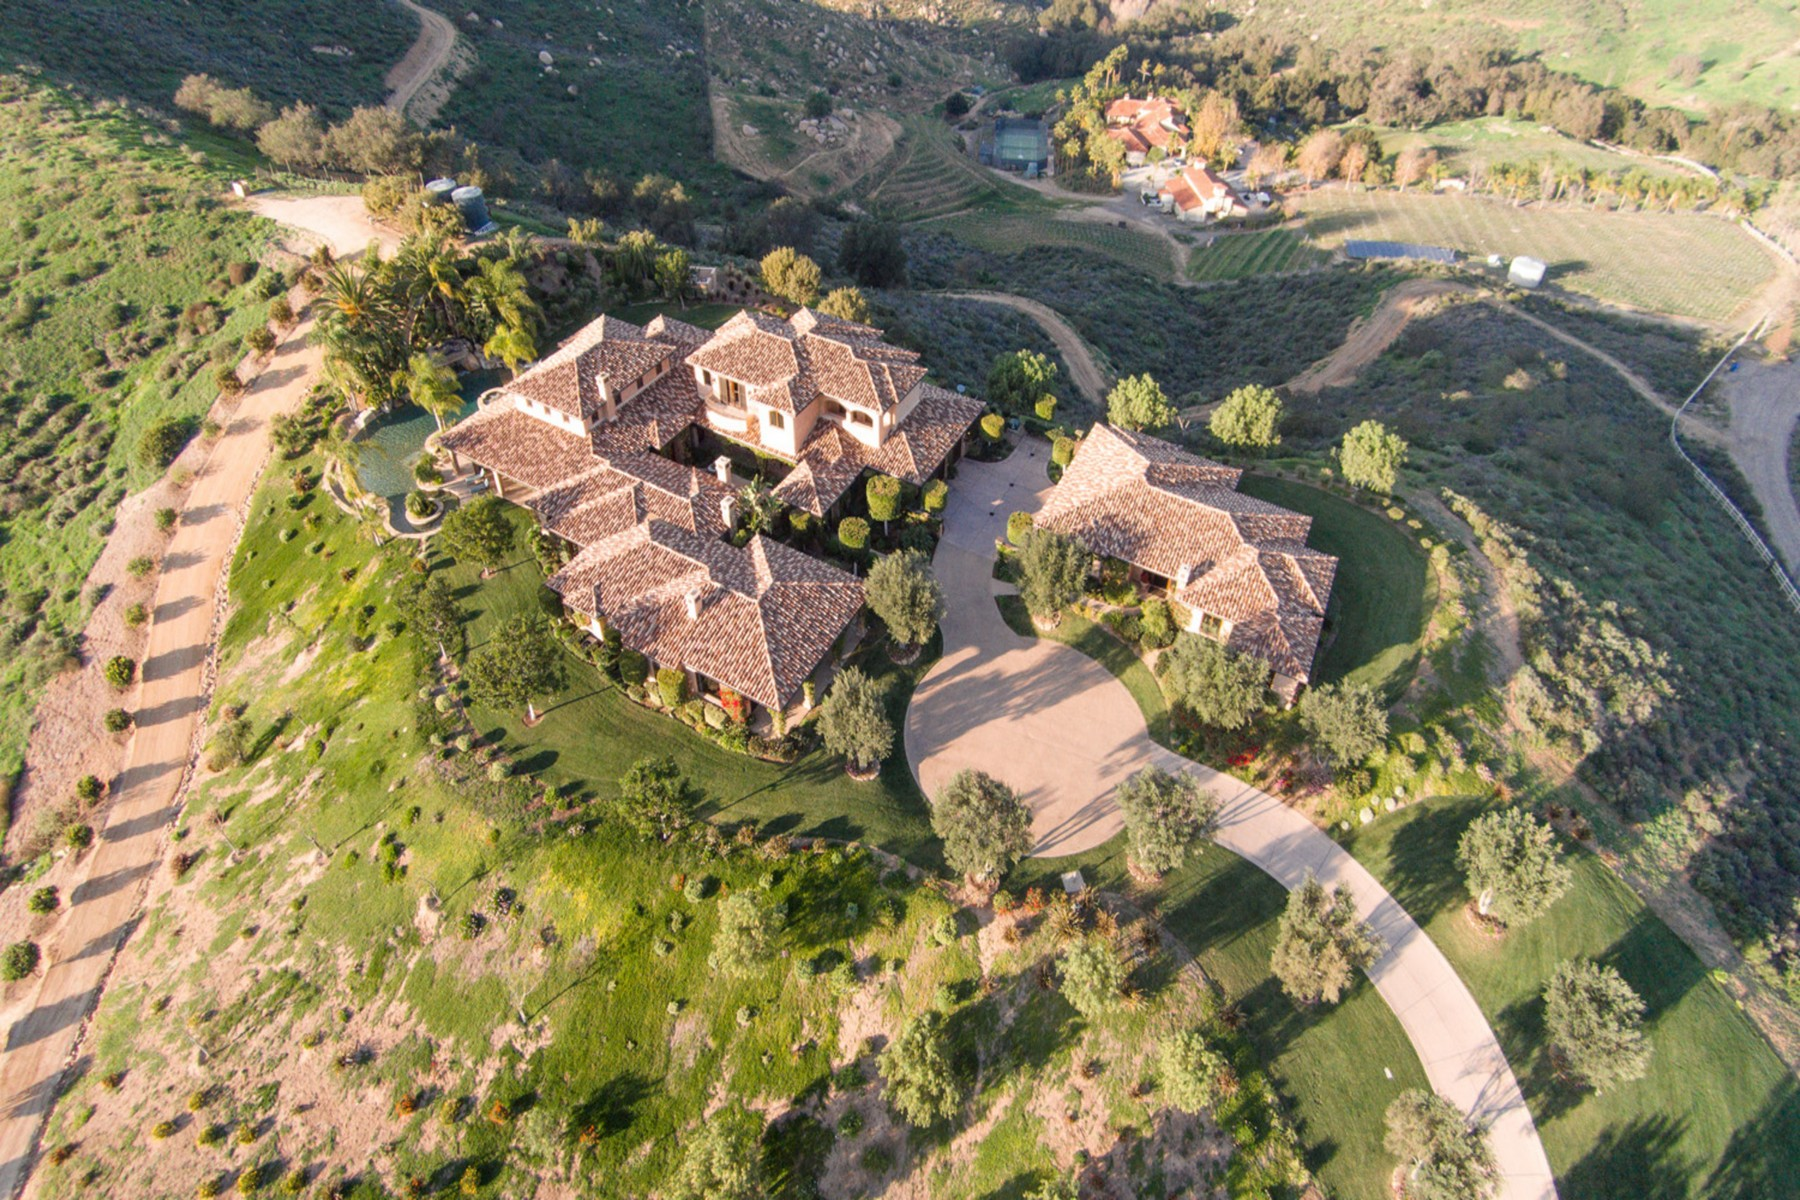 Single Family Home for Sale at 18880 Old Coach Way Poway, California 92064 United States